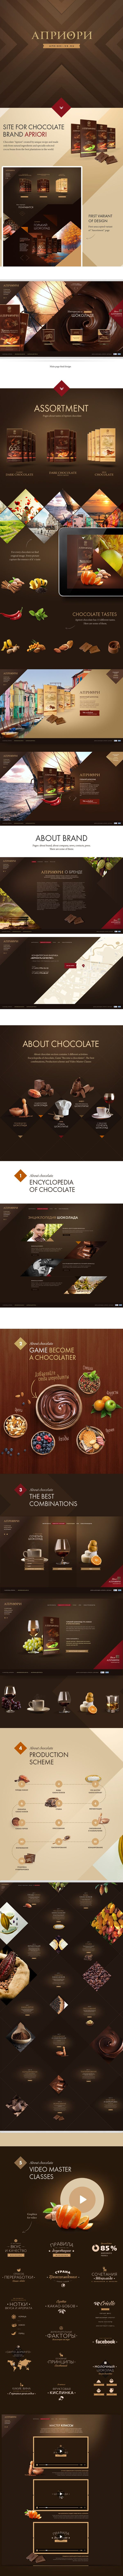 Apriori chocolate graphic/web/video design